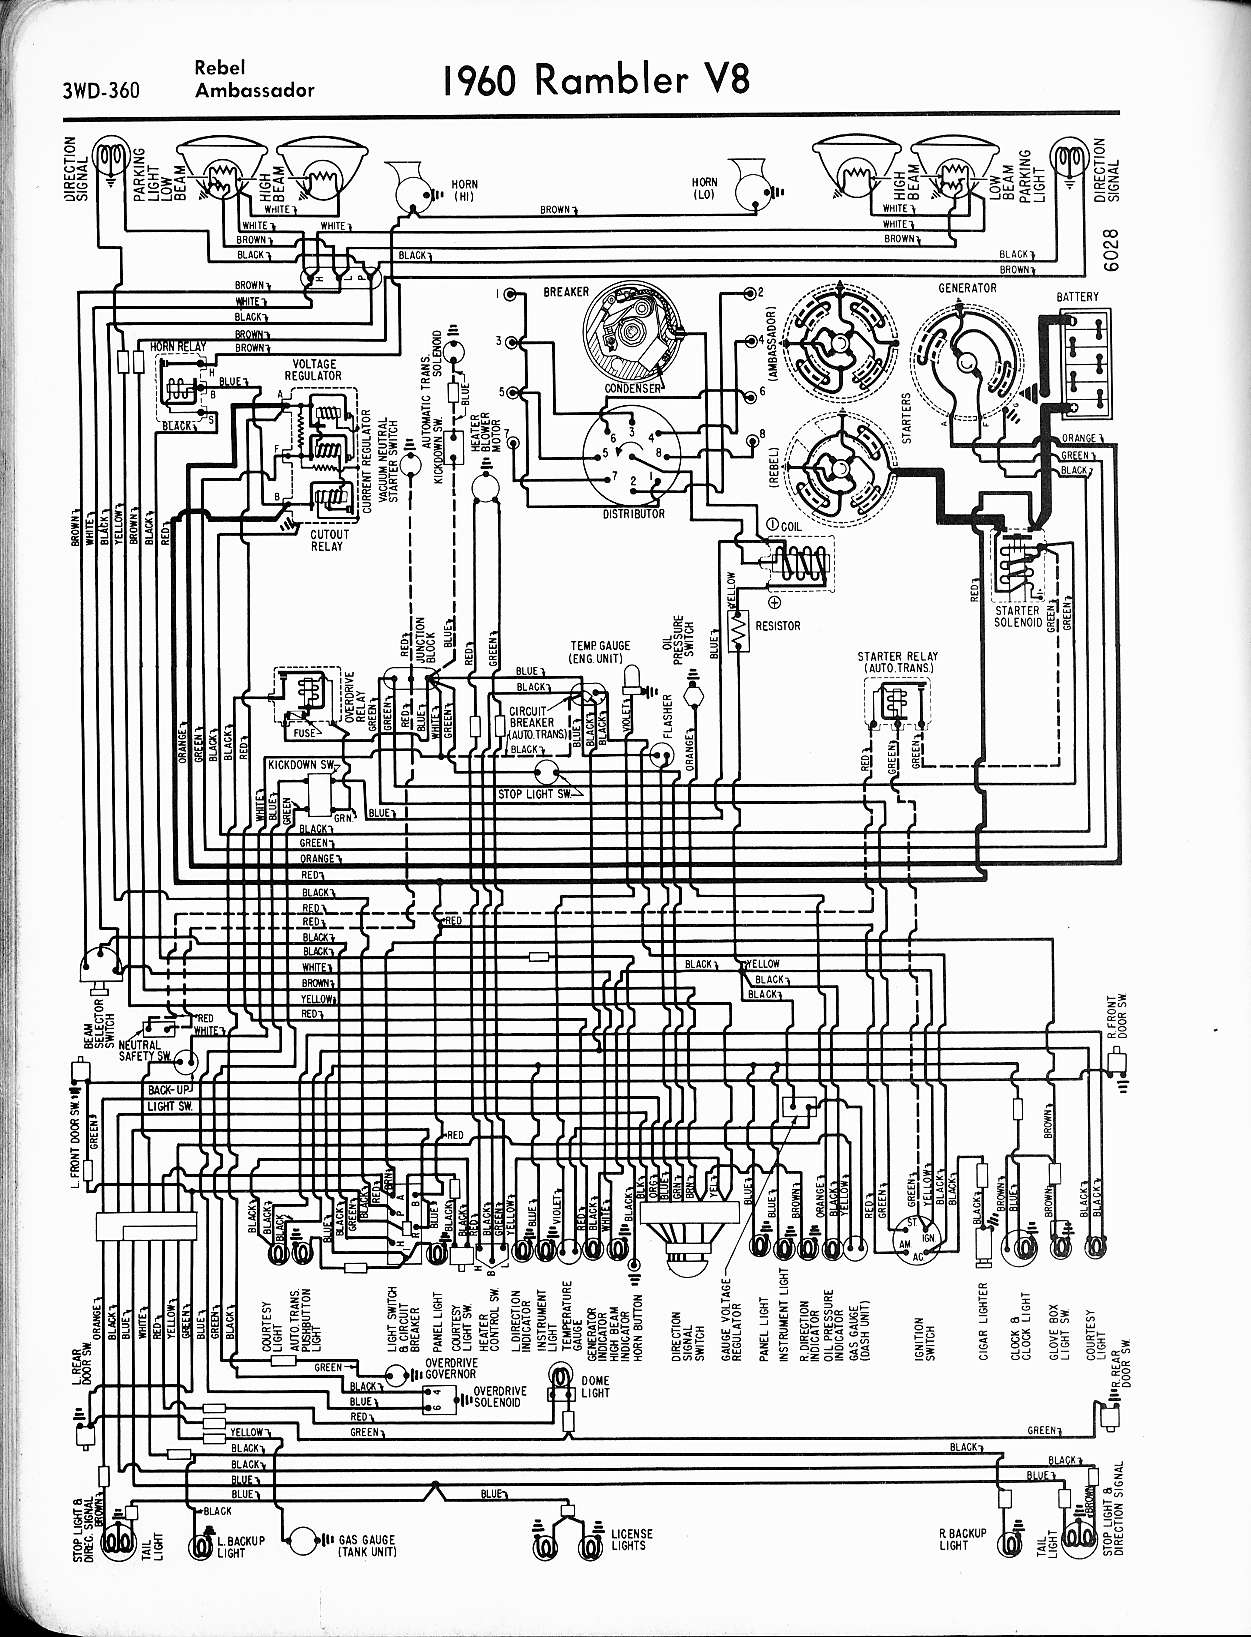 1967 Amc Rebel Wiring Diagram | Wiring Diagram Old Car Wiring Diagram on old car accessories, old car chassis, old car electrical systems, old car spec sheets, old car brakes, old car engine, old auto diagrams, old car charging system, old car ignition, old car parts, old car battery, old car blueprints, old car schematics,